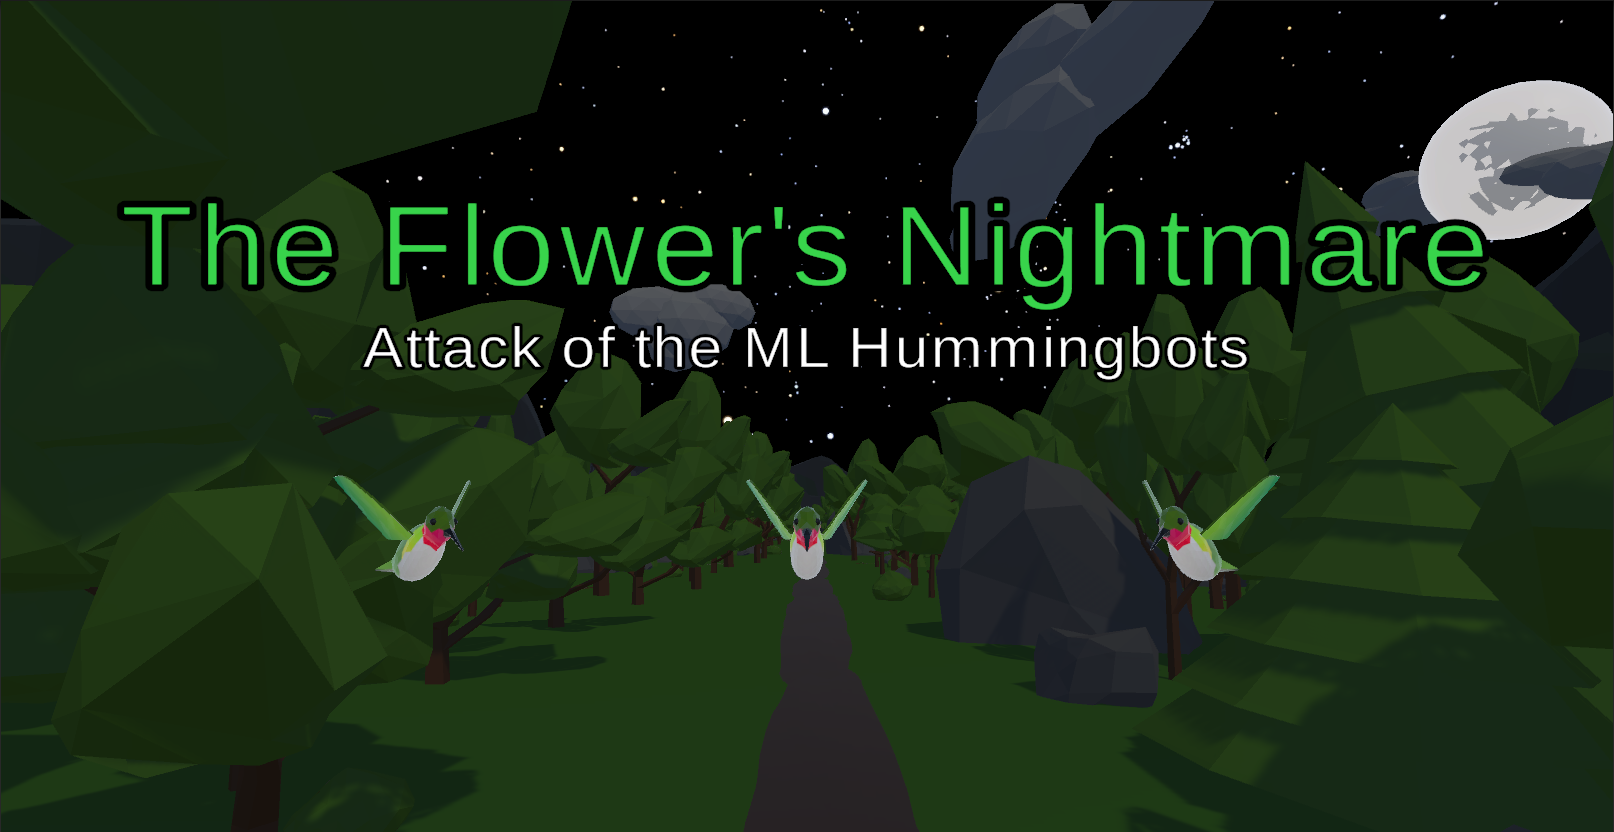 The Flower's Nightmare: Attack of the ML Hummingbots